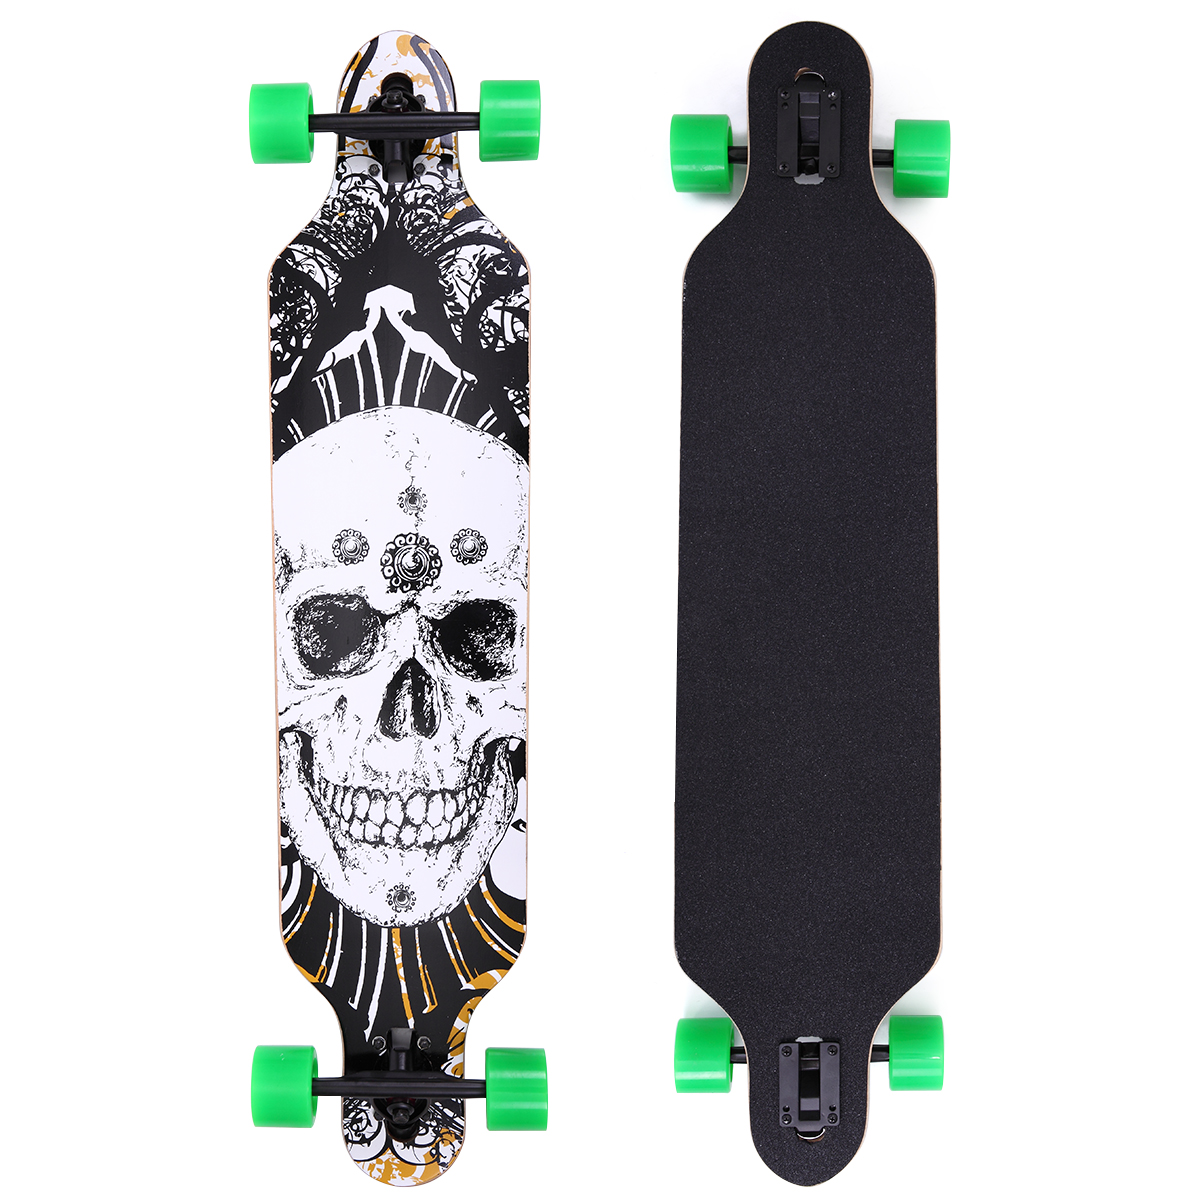 """Lazymoon 41"""" X 10"""" Professional Long Board Skateboard Downhill Cruiser 9 Layer Canadian Maple Complete, Black... by Lazymoon"""